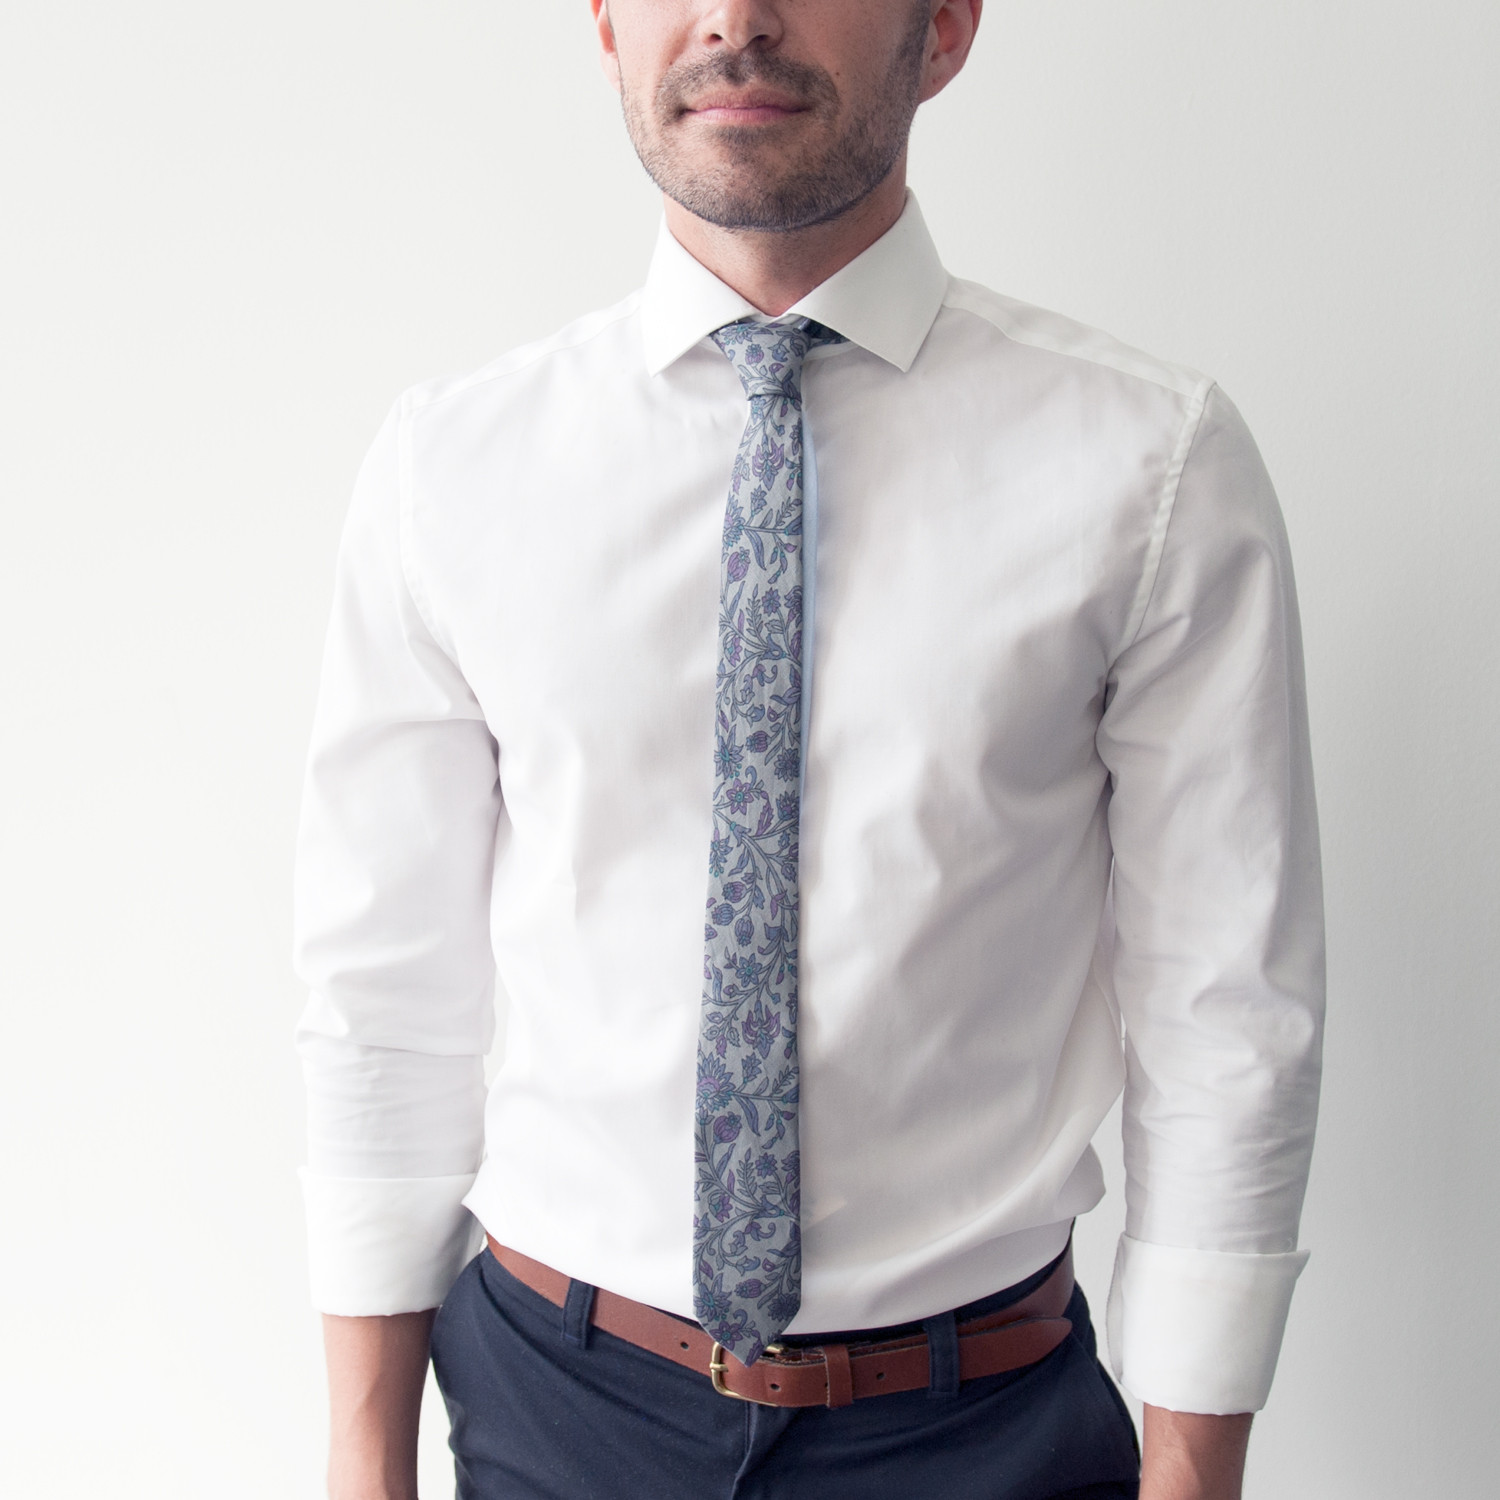 The Mike Skinny Tie Bo Clothing Touch Of Modern